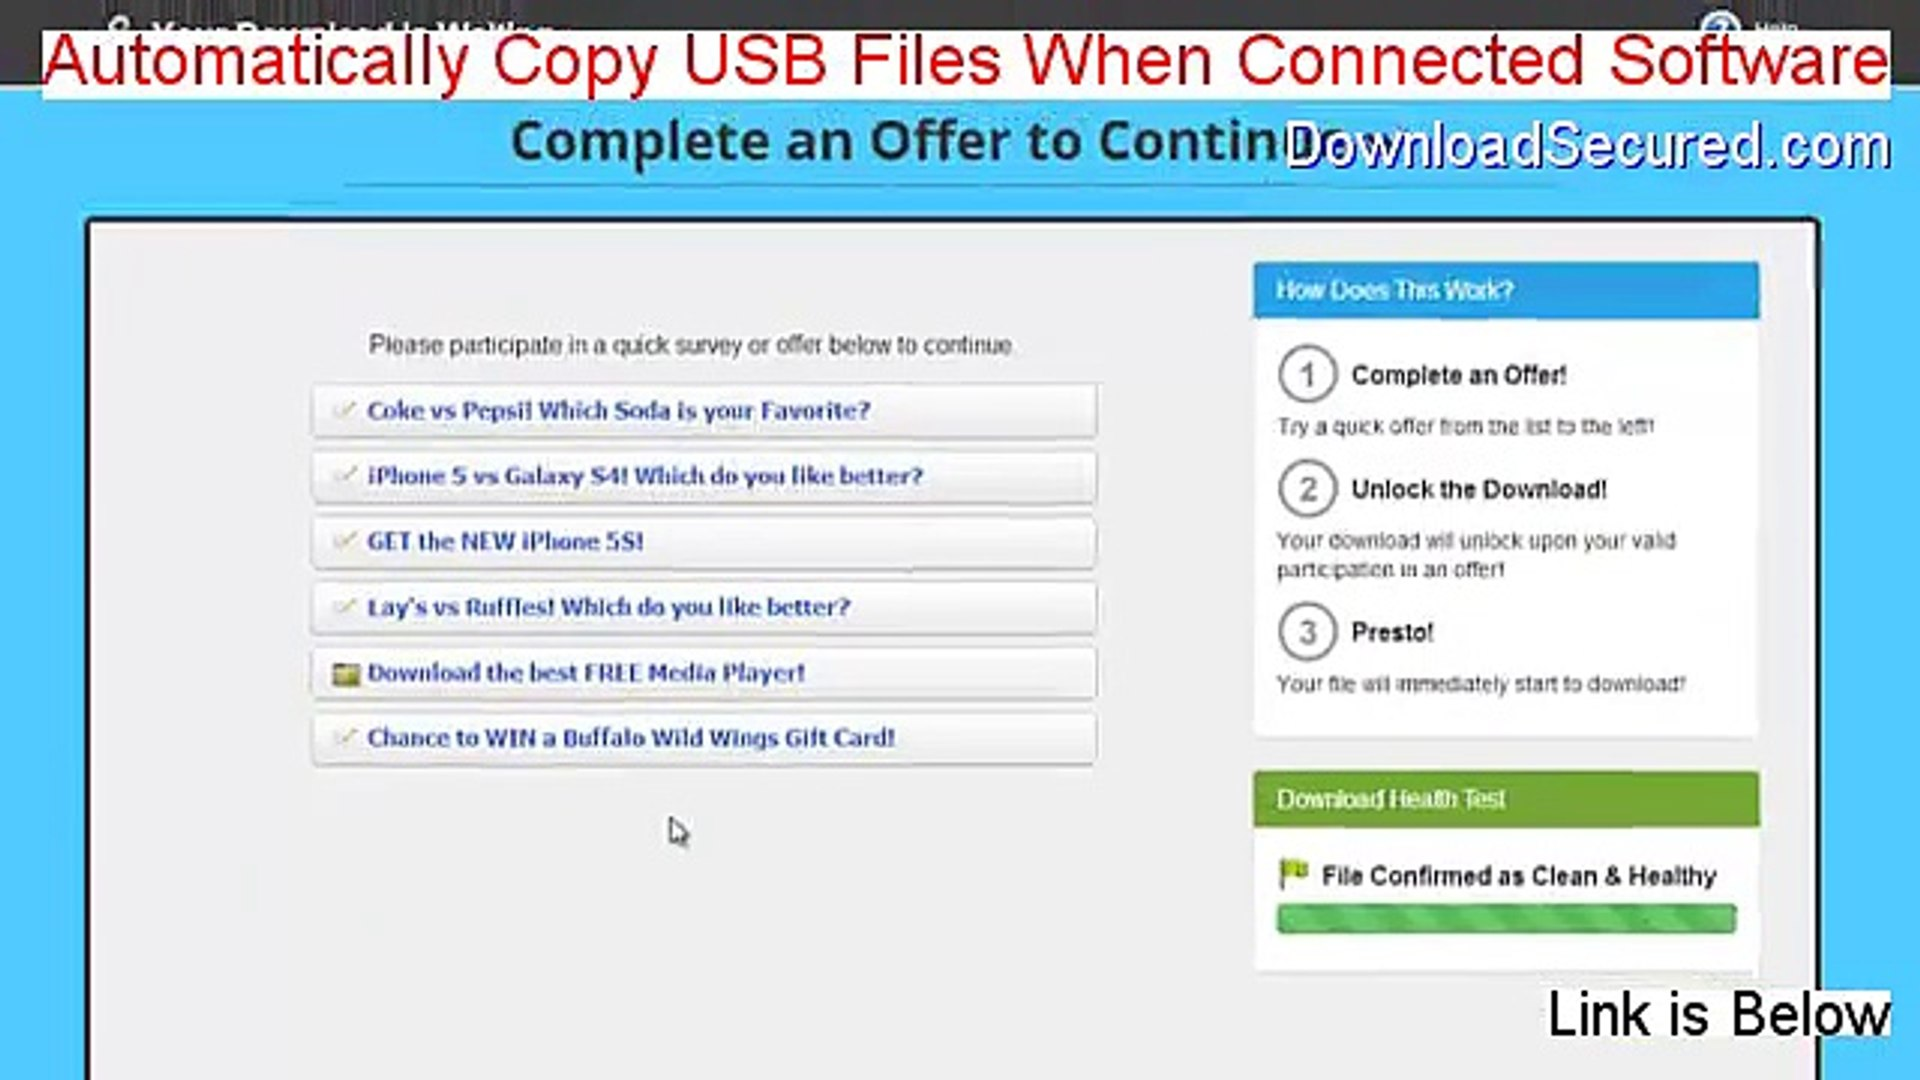 Automatically Copy USB Files When Connected Software Crack - automatically copy usb files when conne